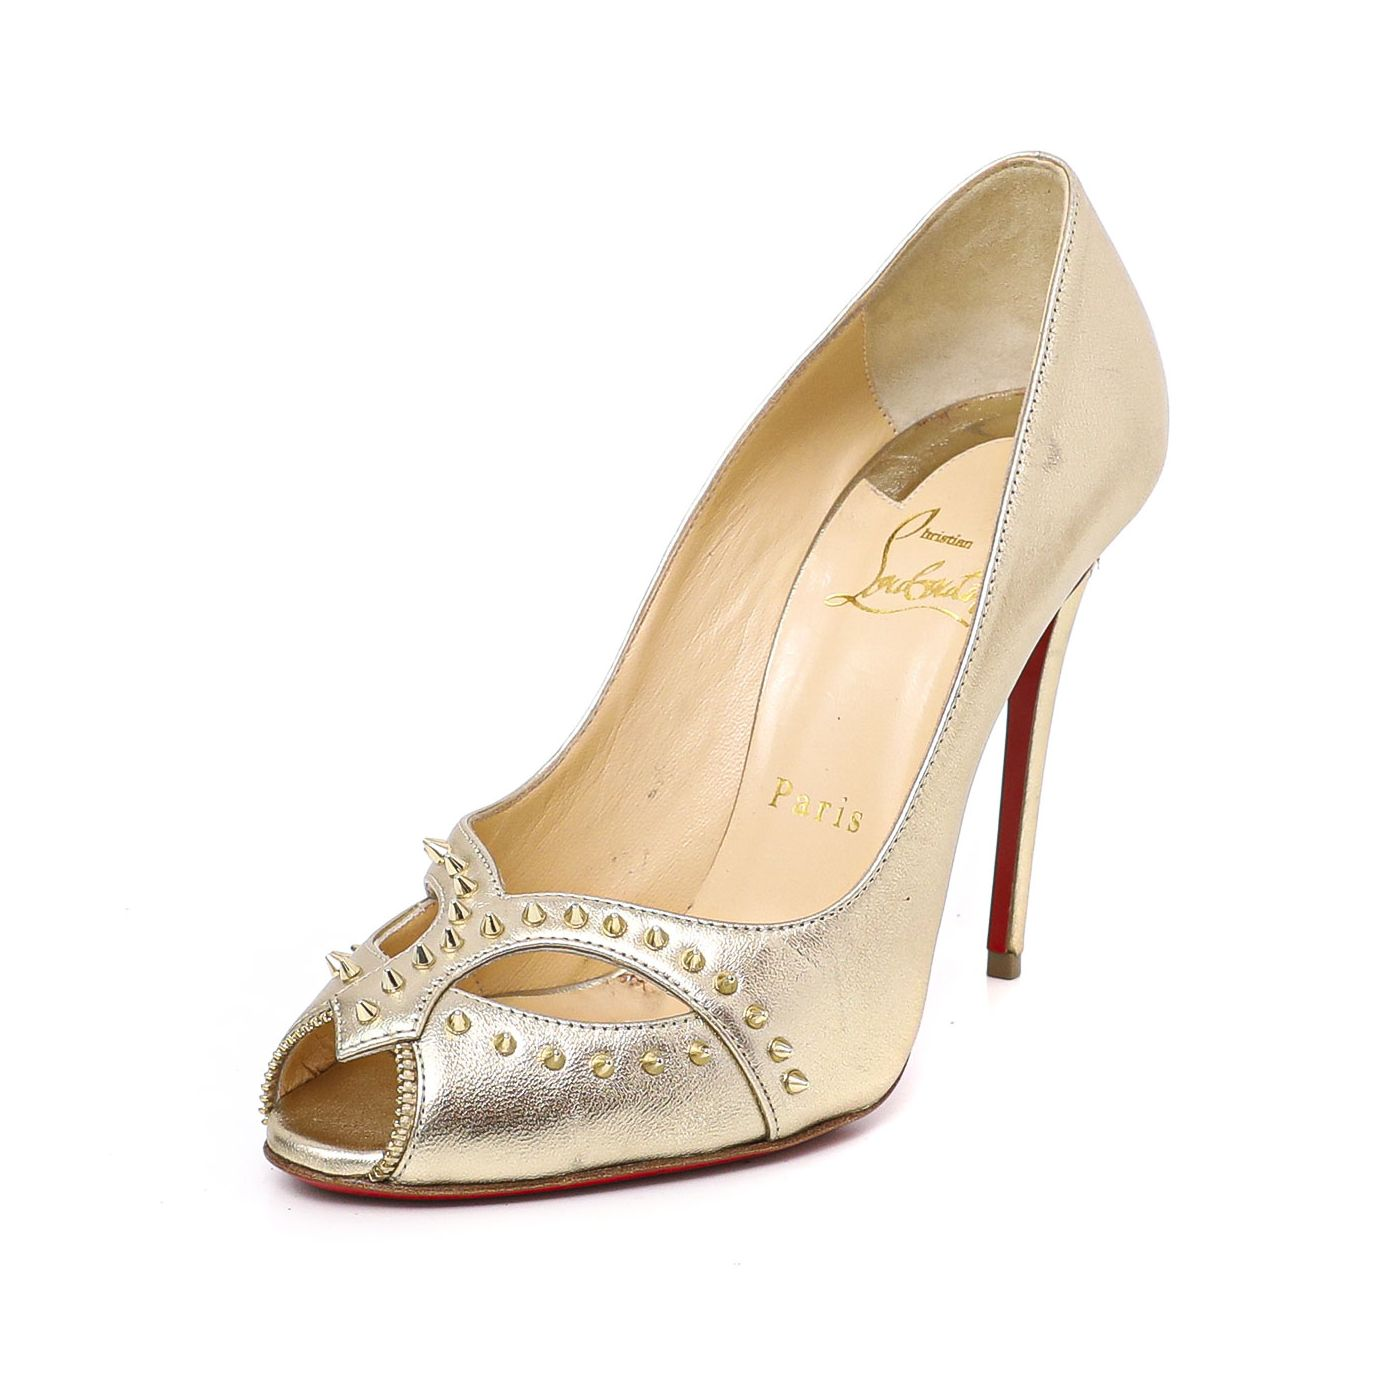 Christian Louboutin Gold Cagouletta Pumps38